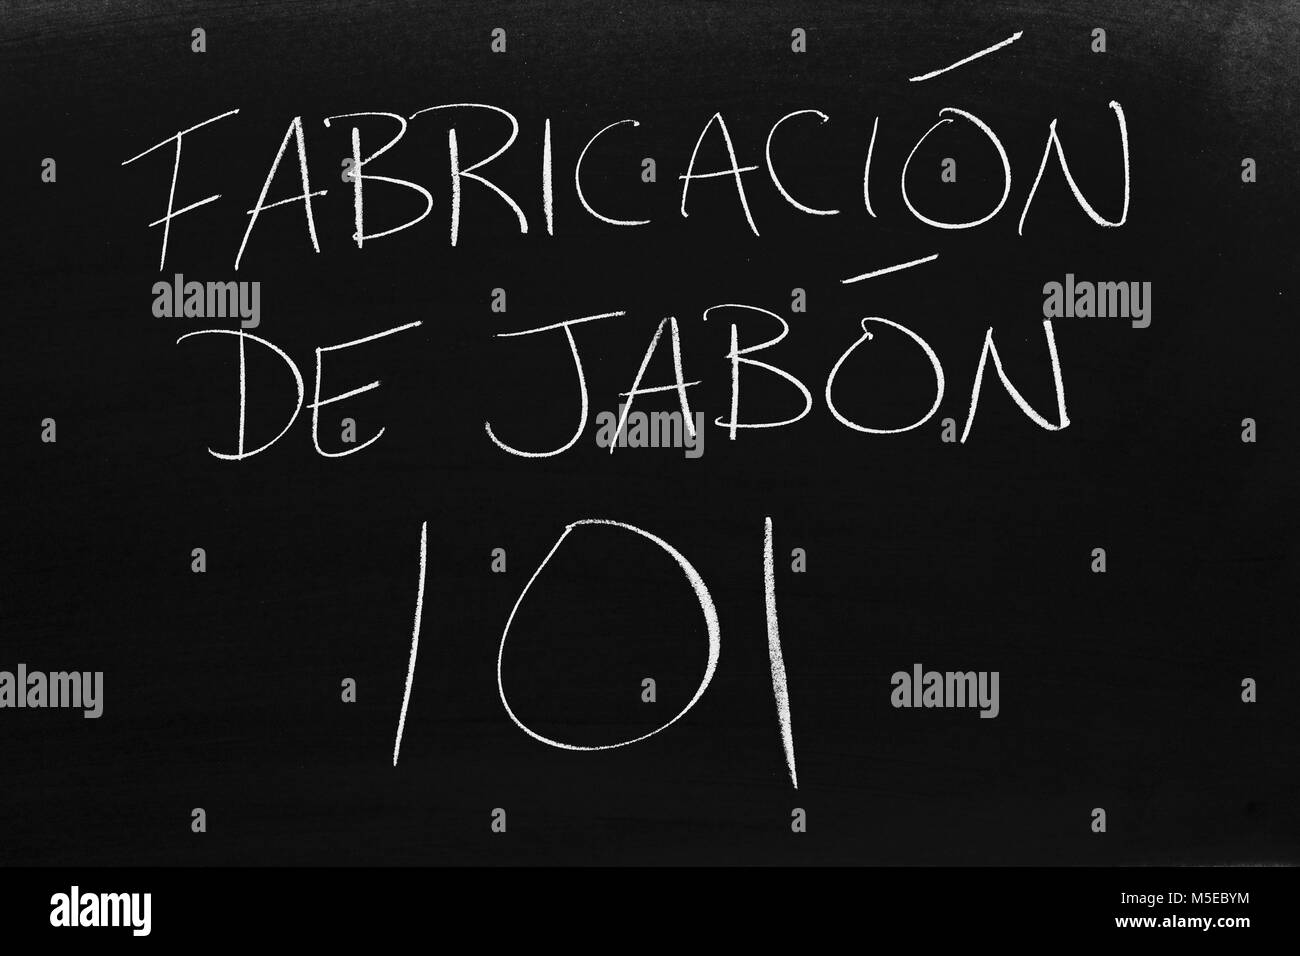 The words Fabricación De Jabón 101 on a blackboard in chalk - Stock Image